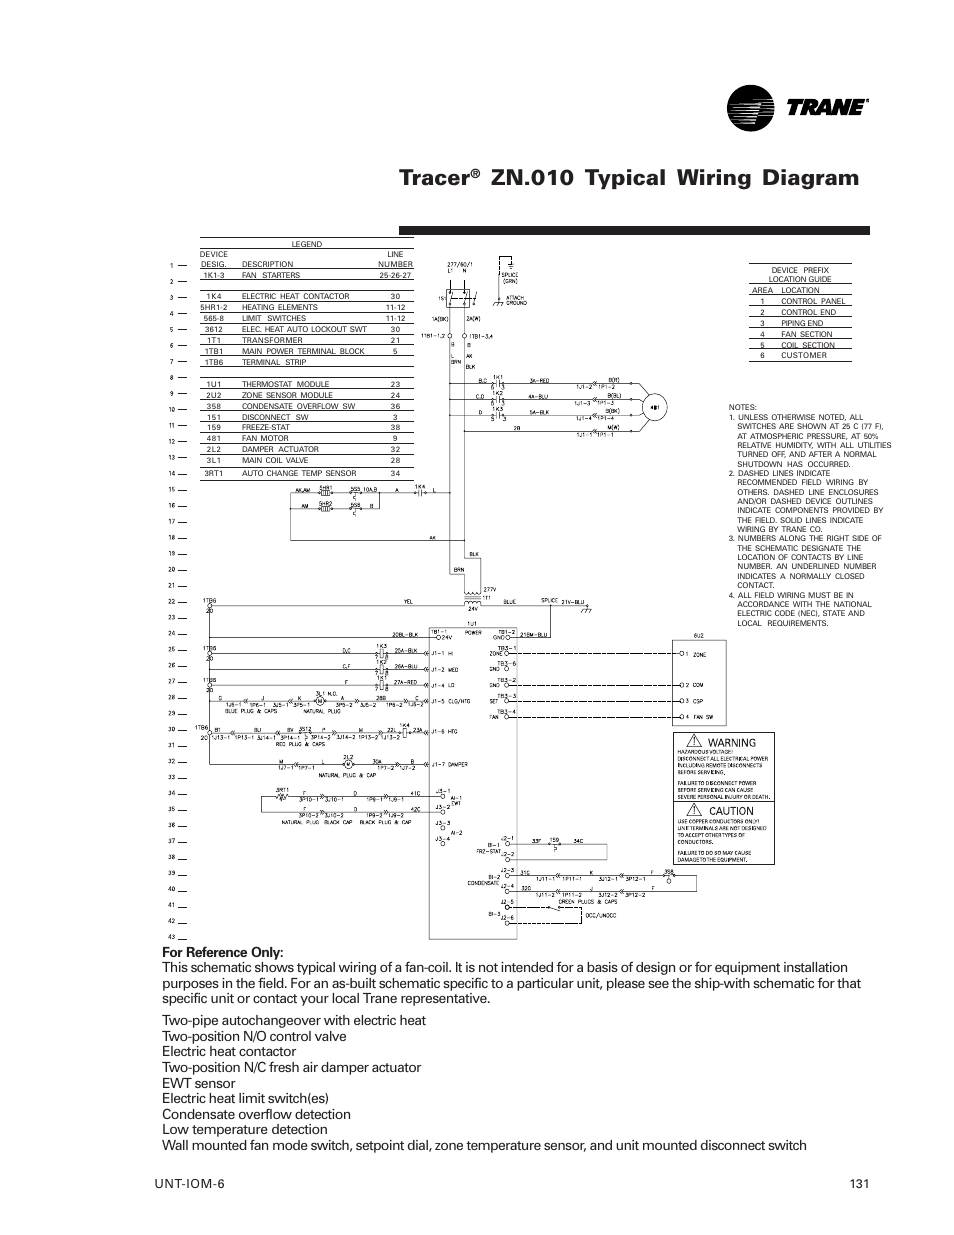 Tracer  Zn 010 Typical Wiring Diagram  Unt